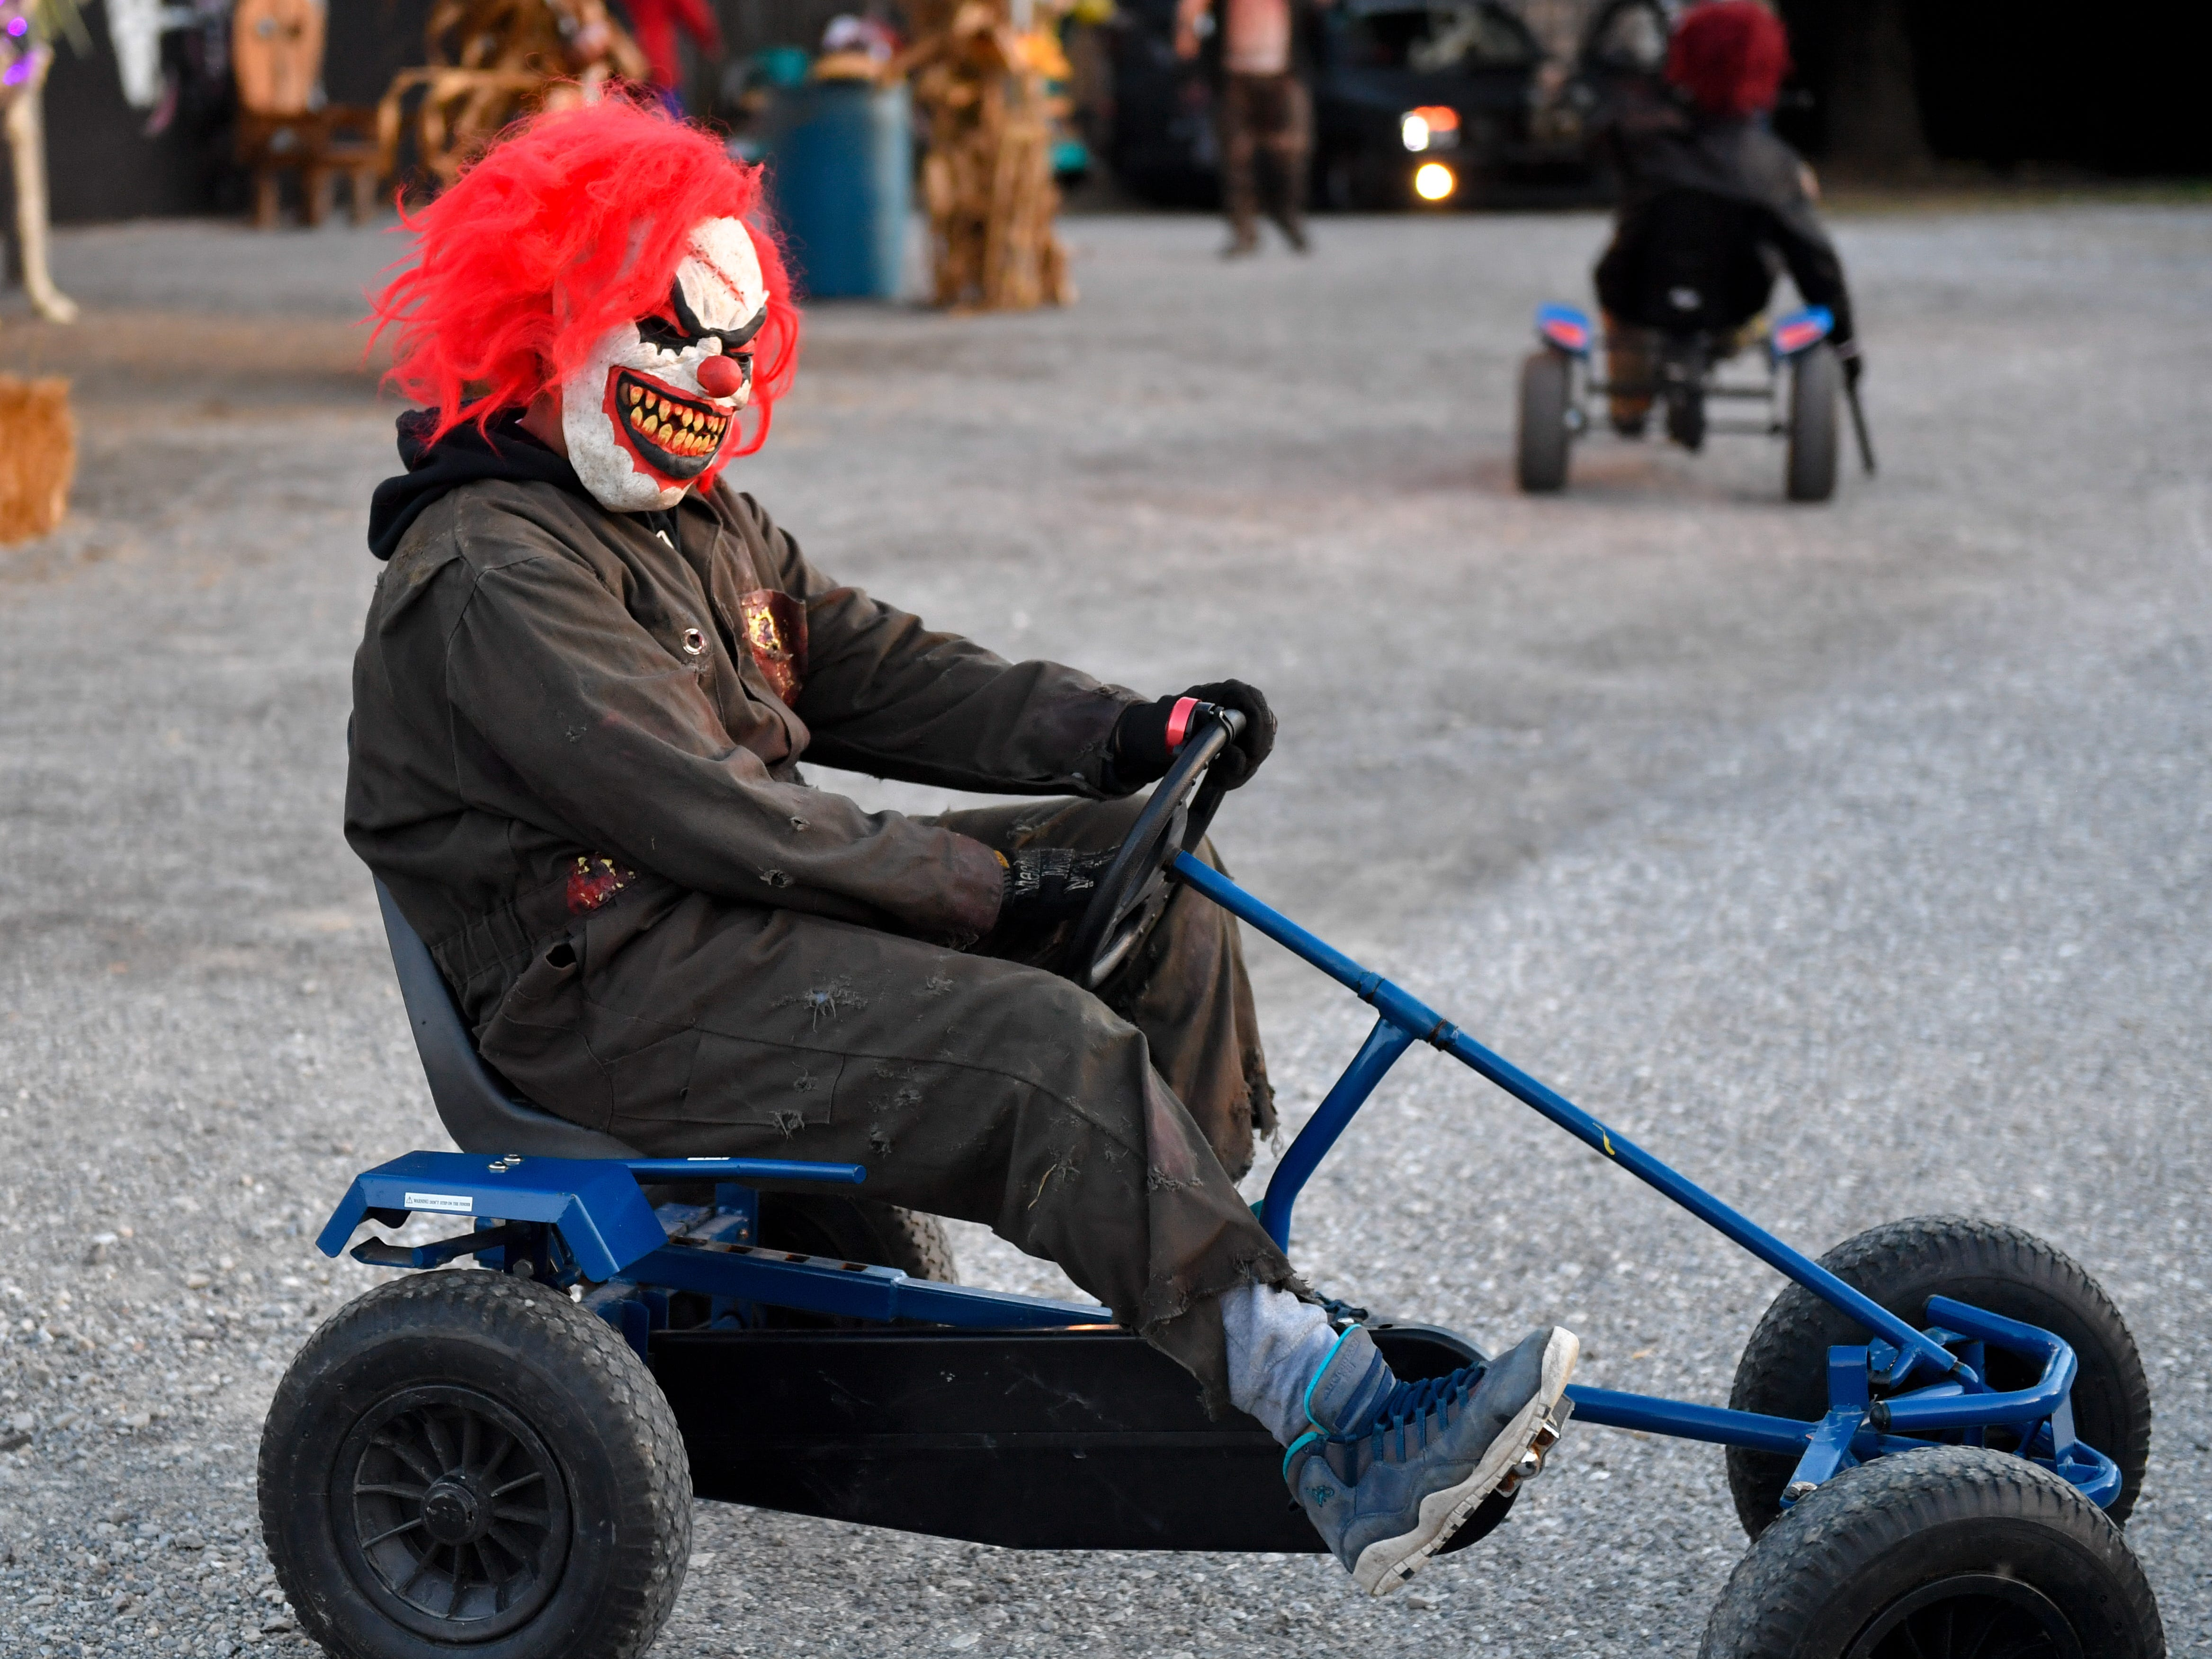 Actors ride around on tricycles creeping out anyone that sees them at Kim's Krypt Haunted Mill, October 12, 2018.